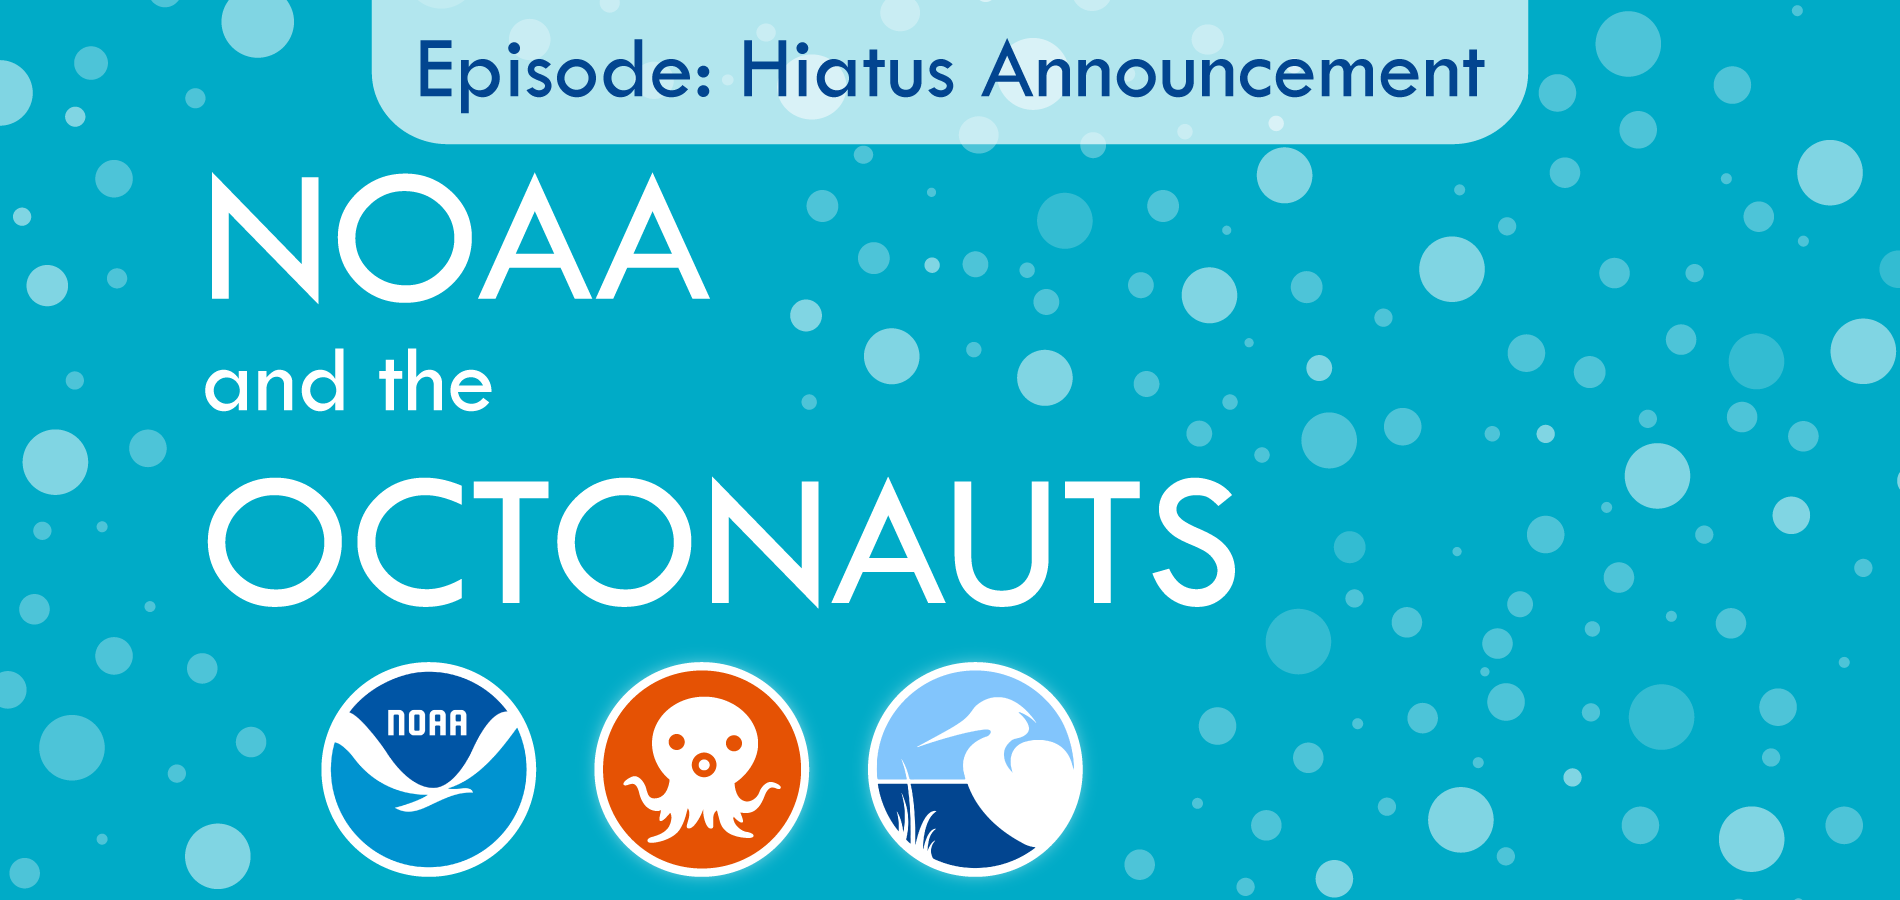 NOAA and the Octonauts podcast, Episode: Hiatus Announcement Banner  Our podcast will be taking a break as we find another co-host to replace Lauren, who is leaving for graduate school. Thanks for joining us for our first three episodes, and see you in 2020!